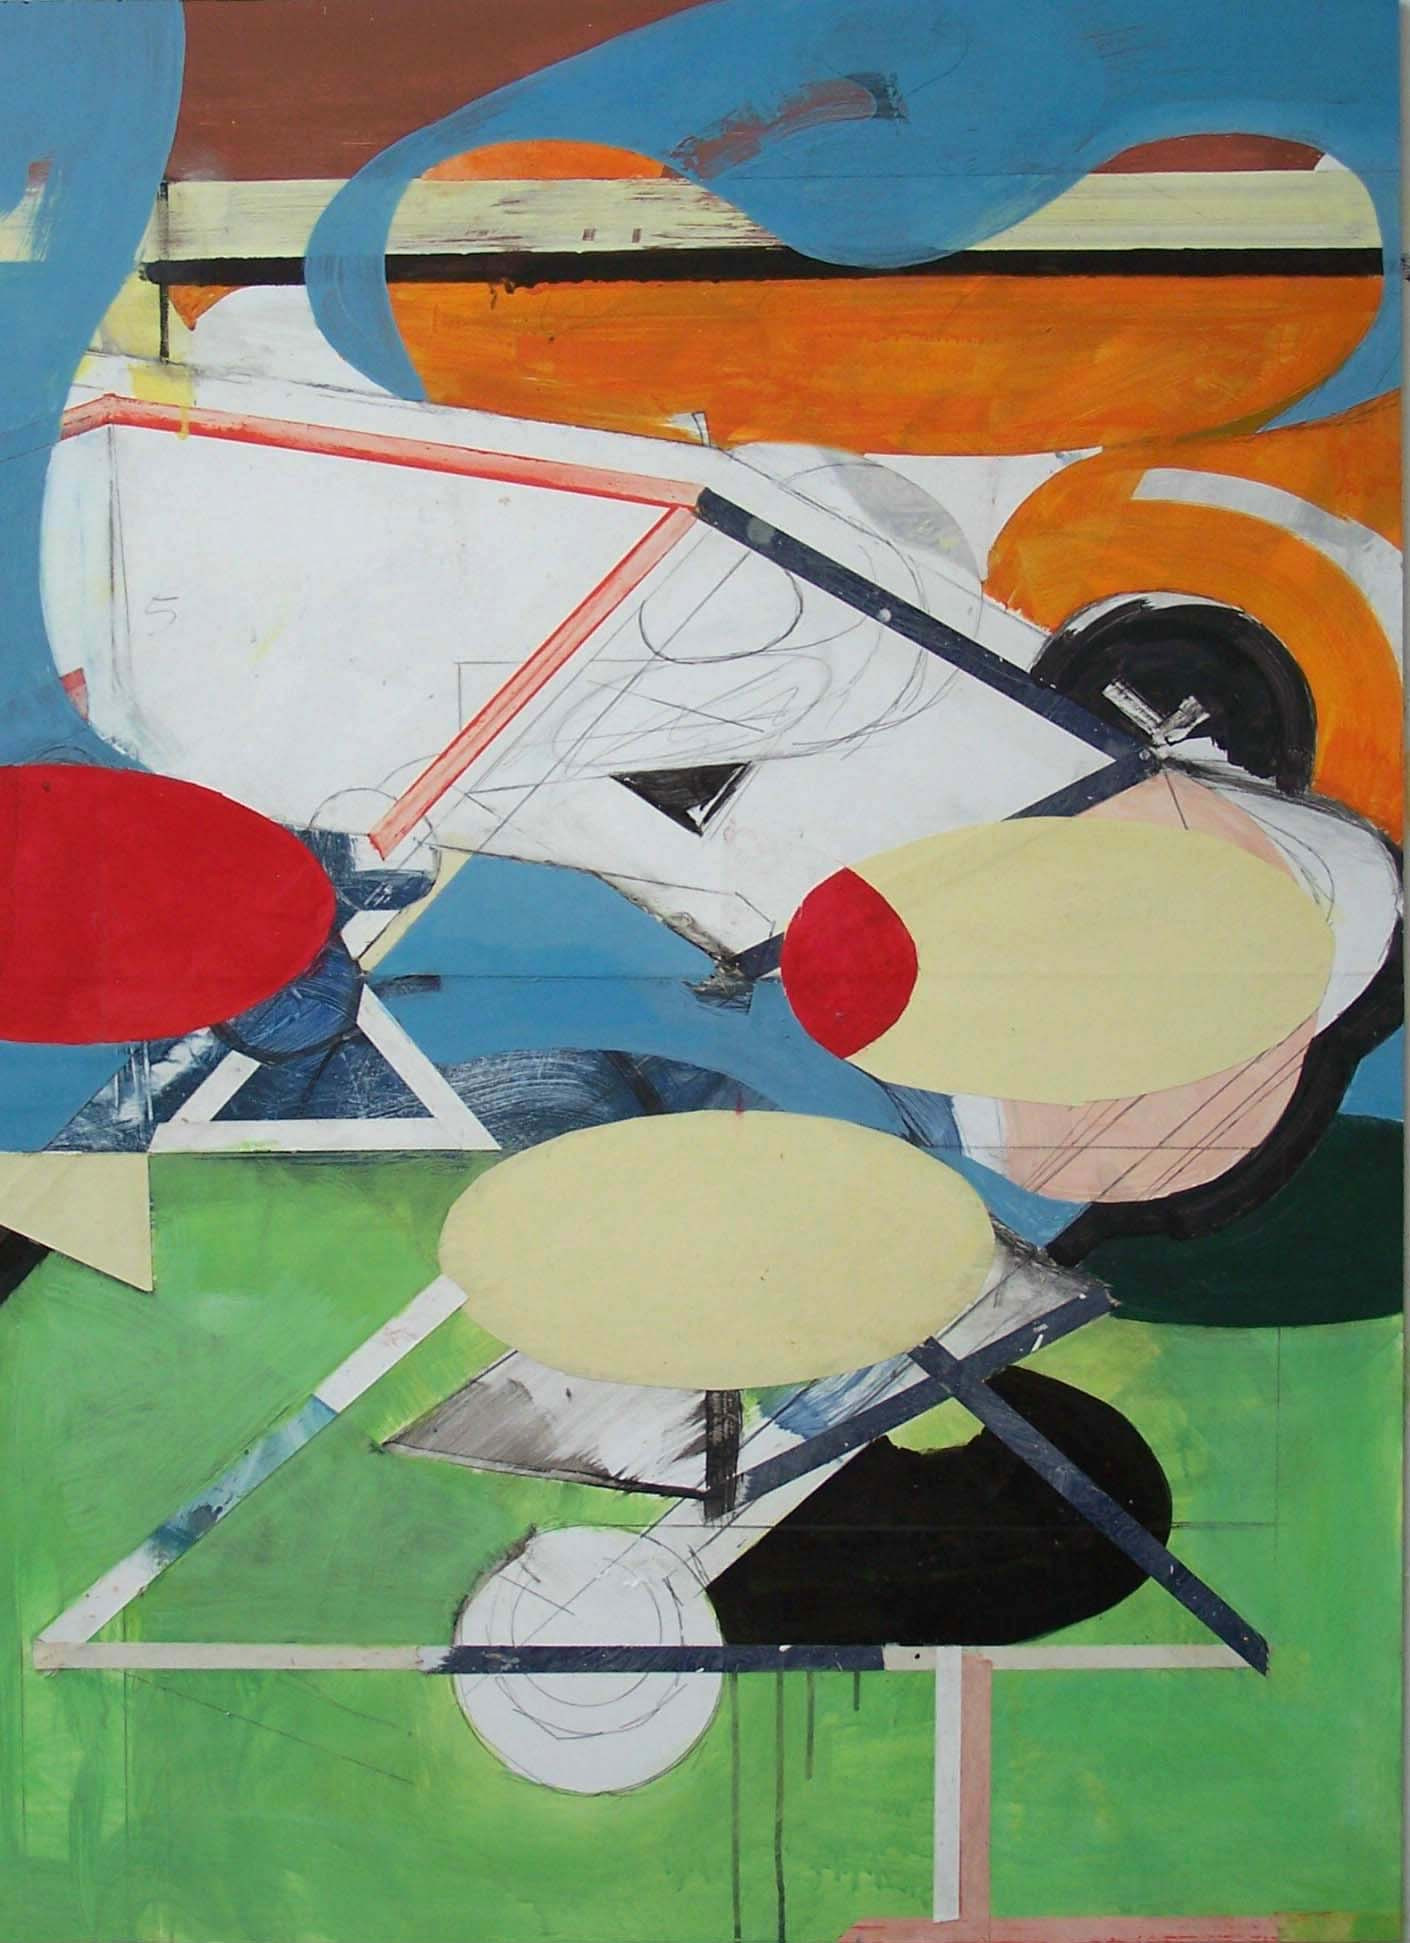 5 Painting with Bird, Sun and Tree 2009 Acrylic and Pasted Paper on board 122x89cm.jpg